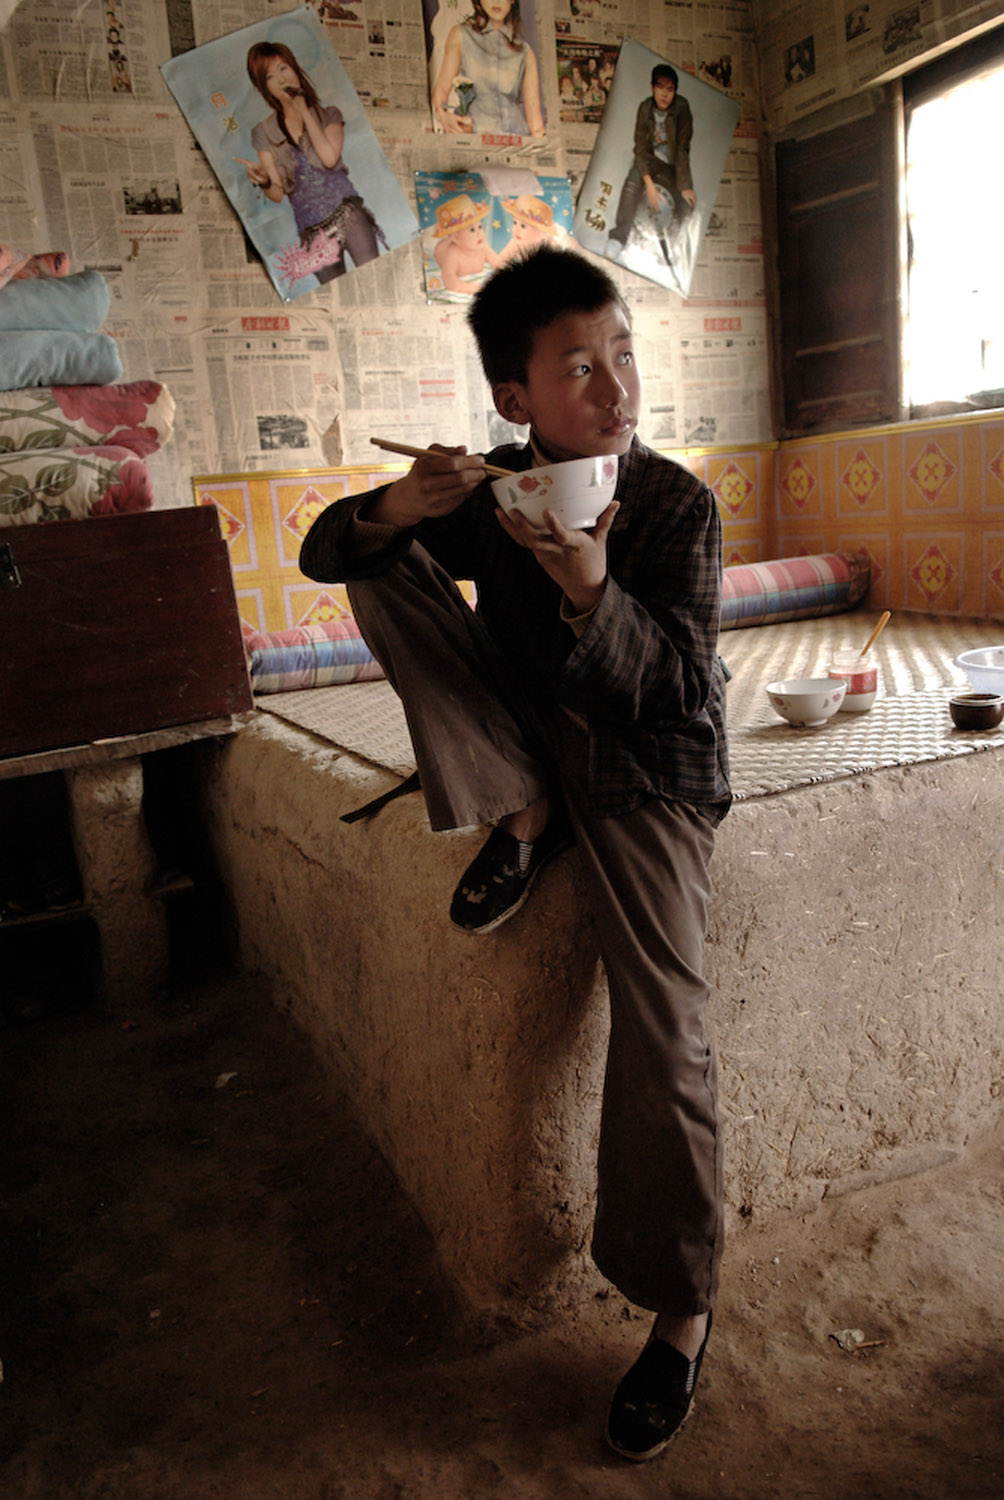 Liu Wei, an orphan, eating a bowl of noodles at his grandma's who struggles to support him.